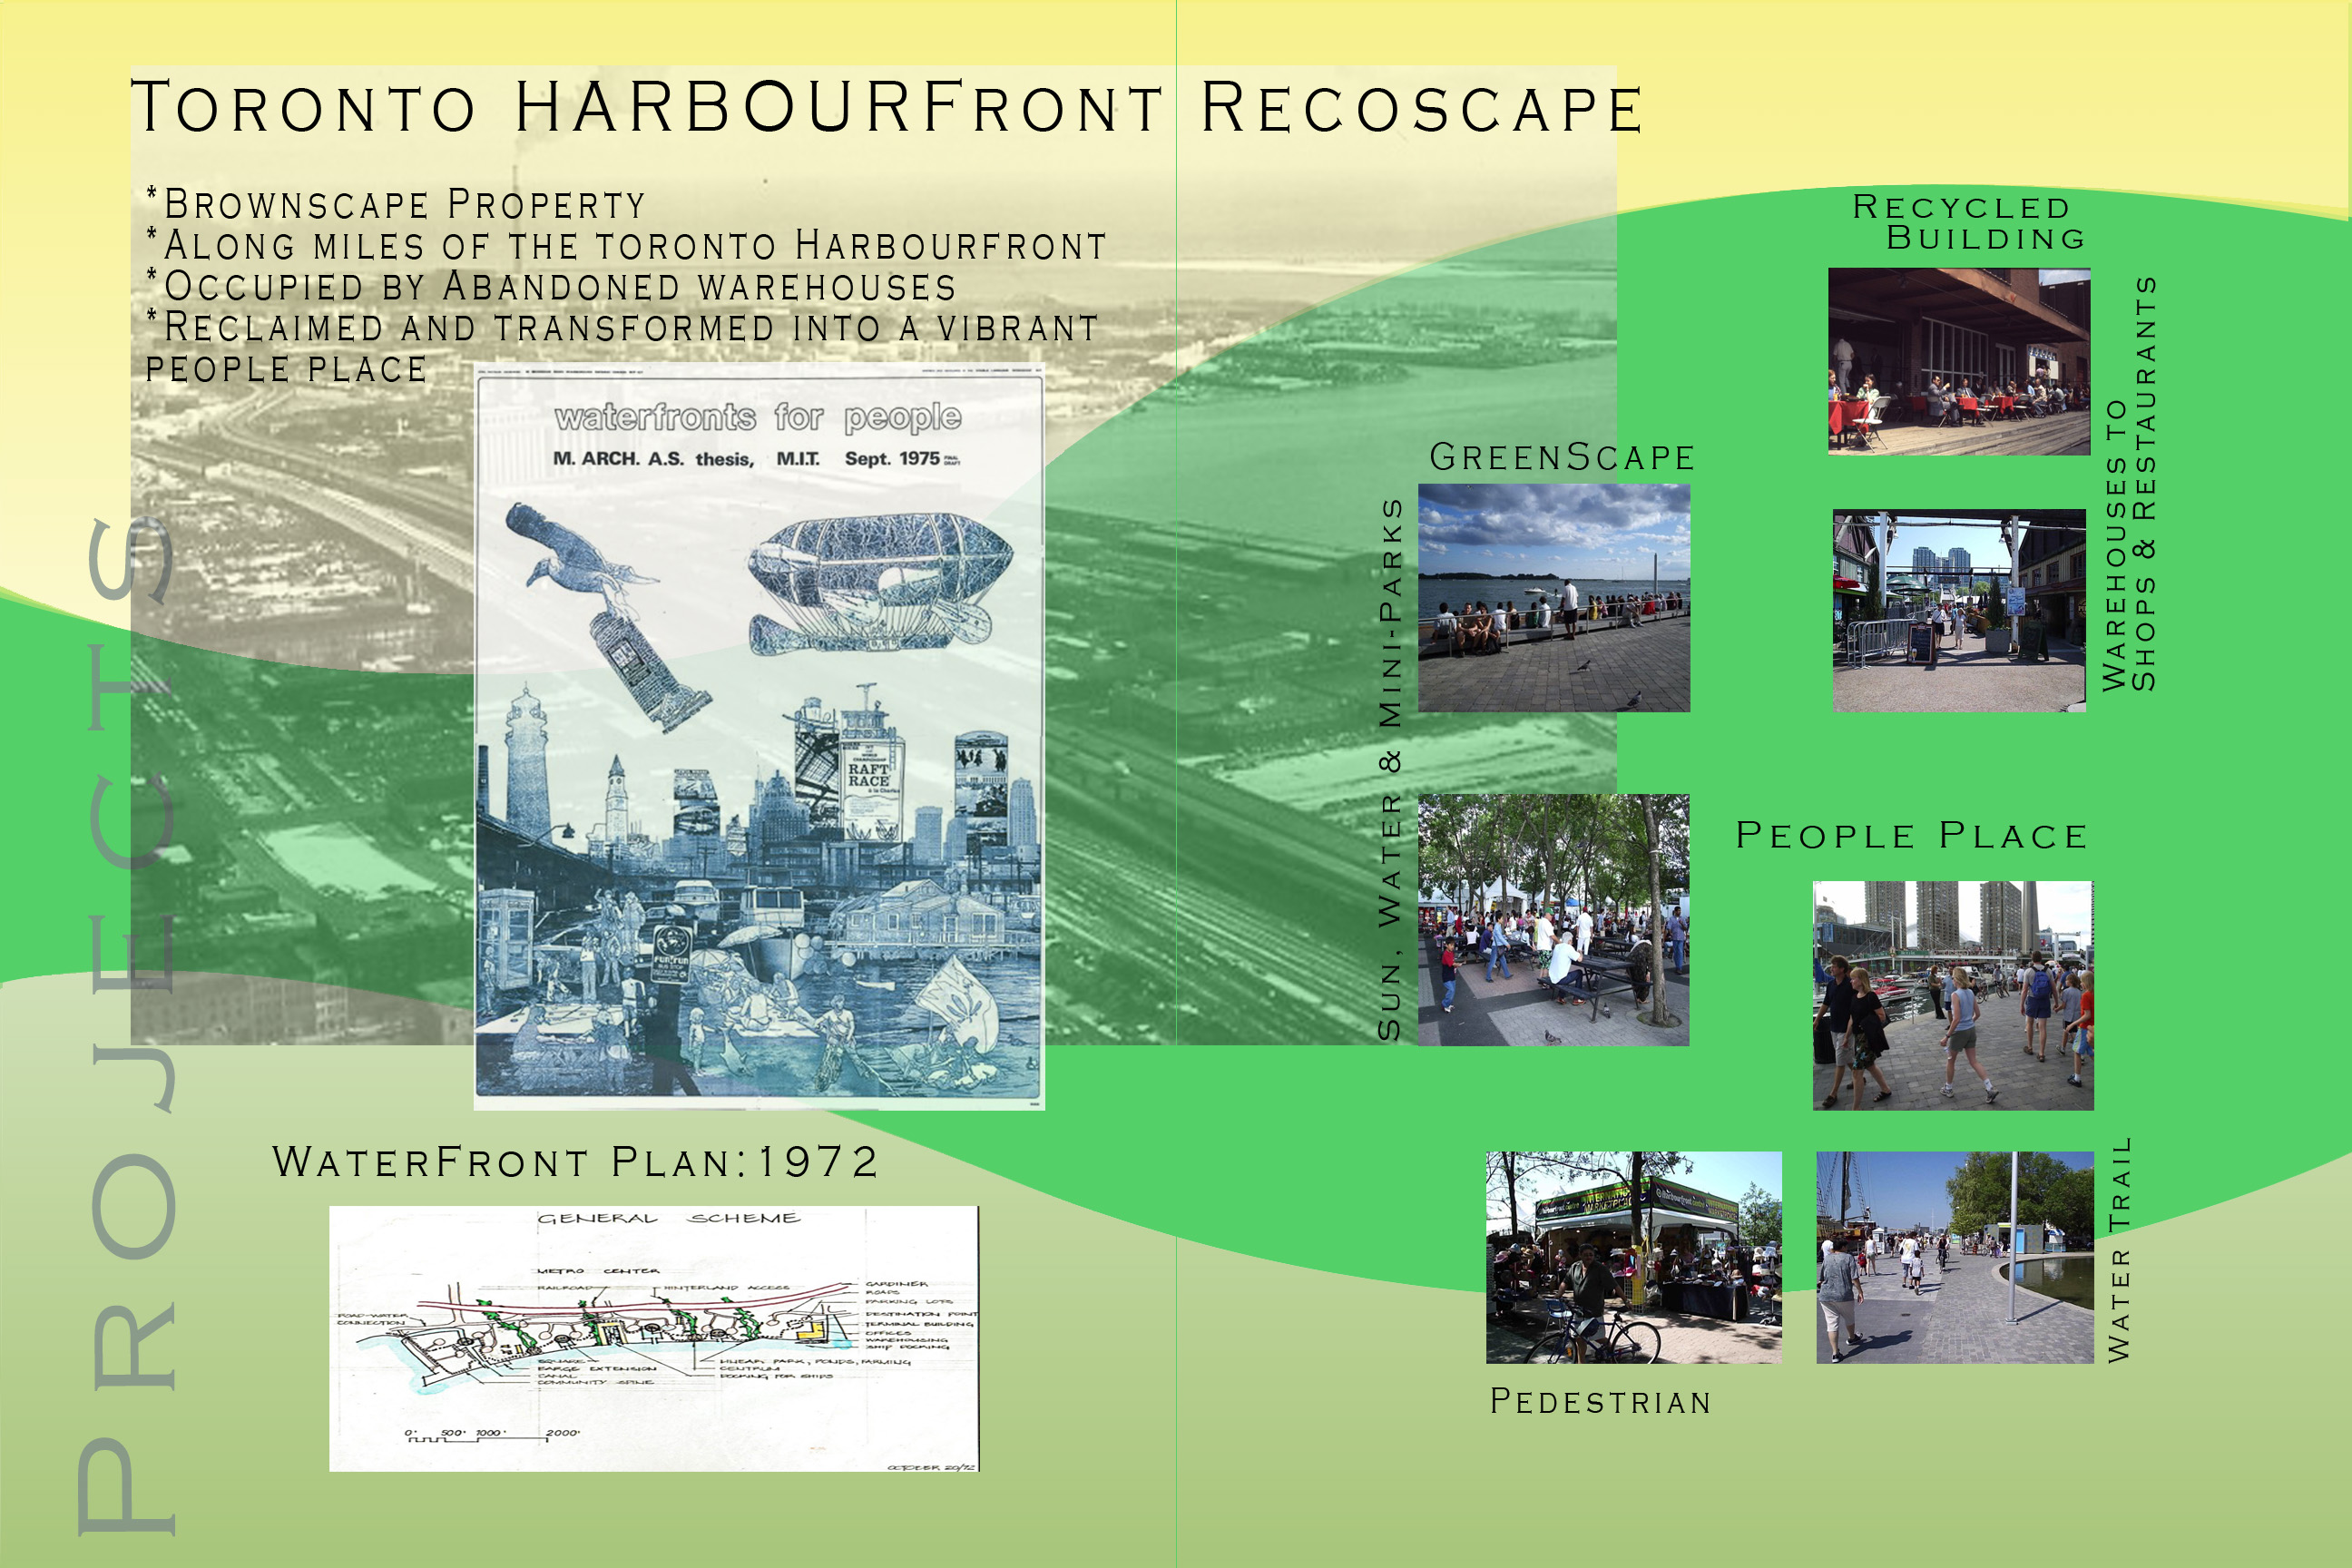 images of Toronto harbourfront project